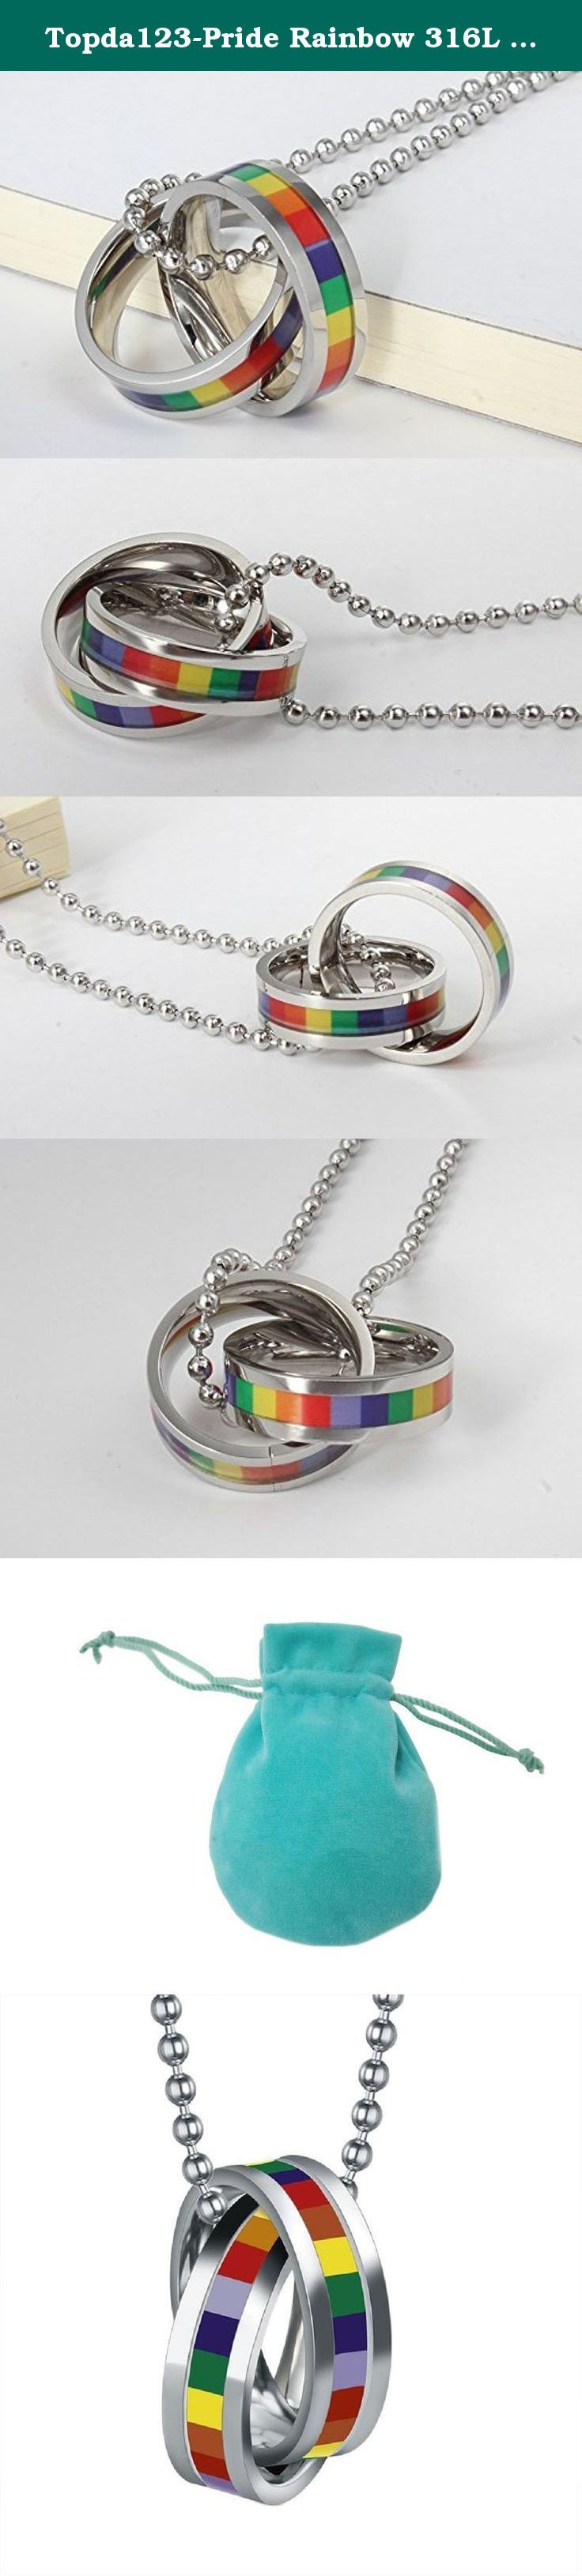 Topda123-Pride Rainbow 316L Stainless Steel Equality Pendant Necklace for LGBT Gay Les With Gift Bag. A perfect gift and souvenir *It's the perfect gift to let someone know you care and show your love - straight from your heart *His and Hers matching couples necklace set in the form of a divided Key Sol, each half personalized the commitment of thatspecial someone. *These two stainless steel Key Sol pendants are stamped with Love You Leally, one for him and one for her. Makes awonderful…